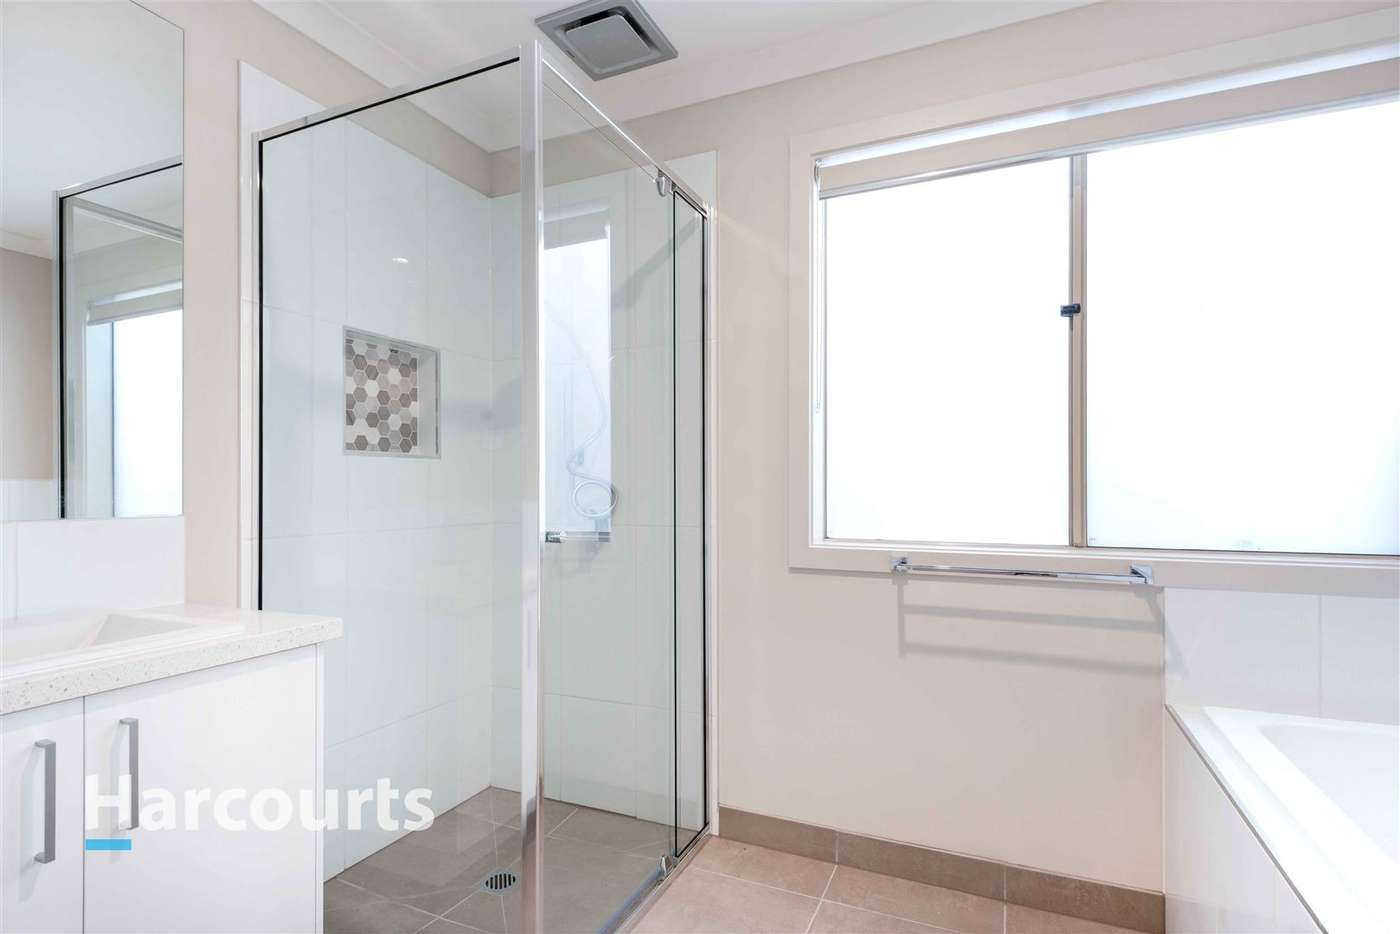 Sixth view of Homely house listing, 35 Australorp Drive, Clyde North VIC 3978